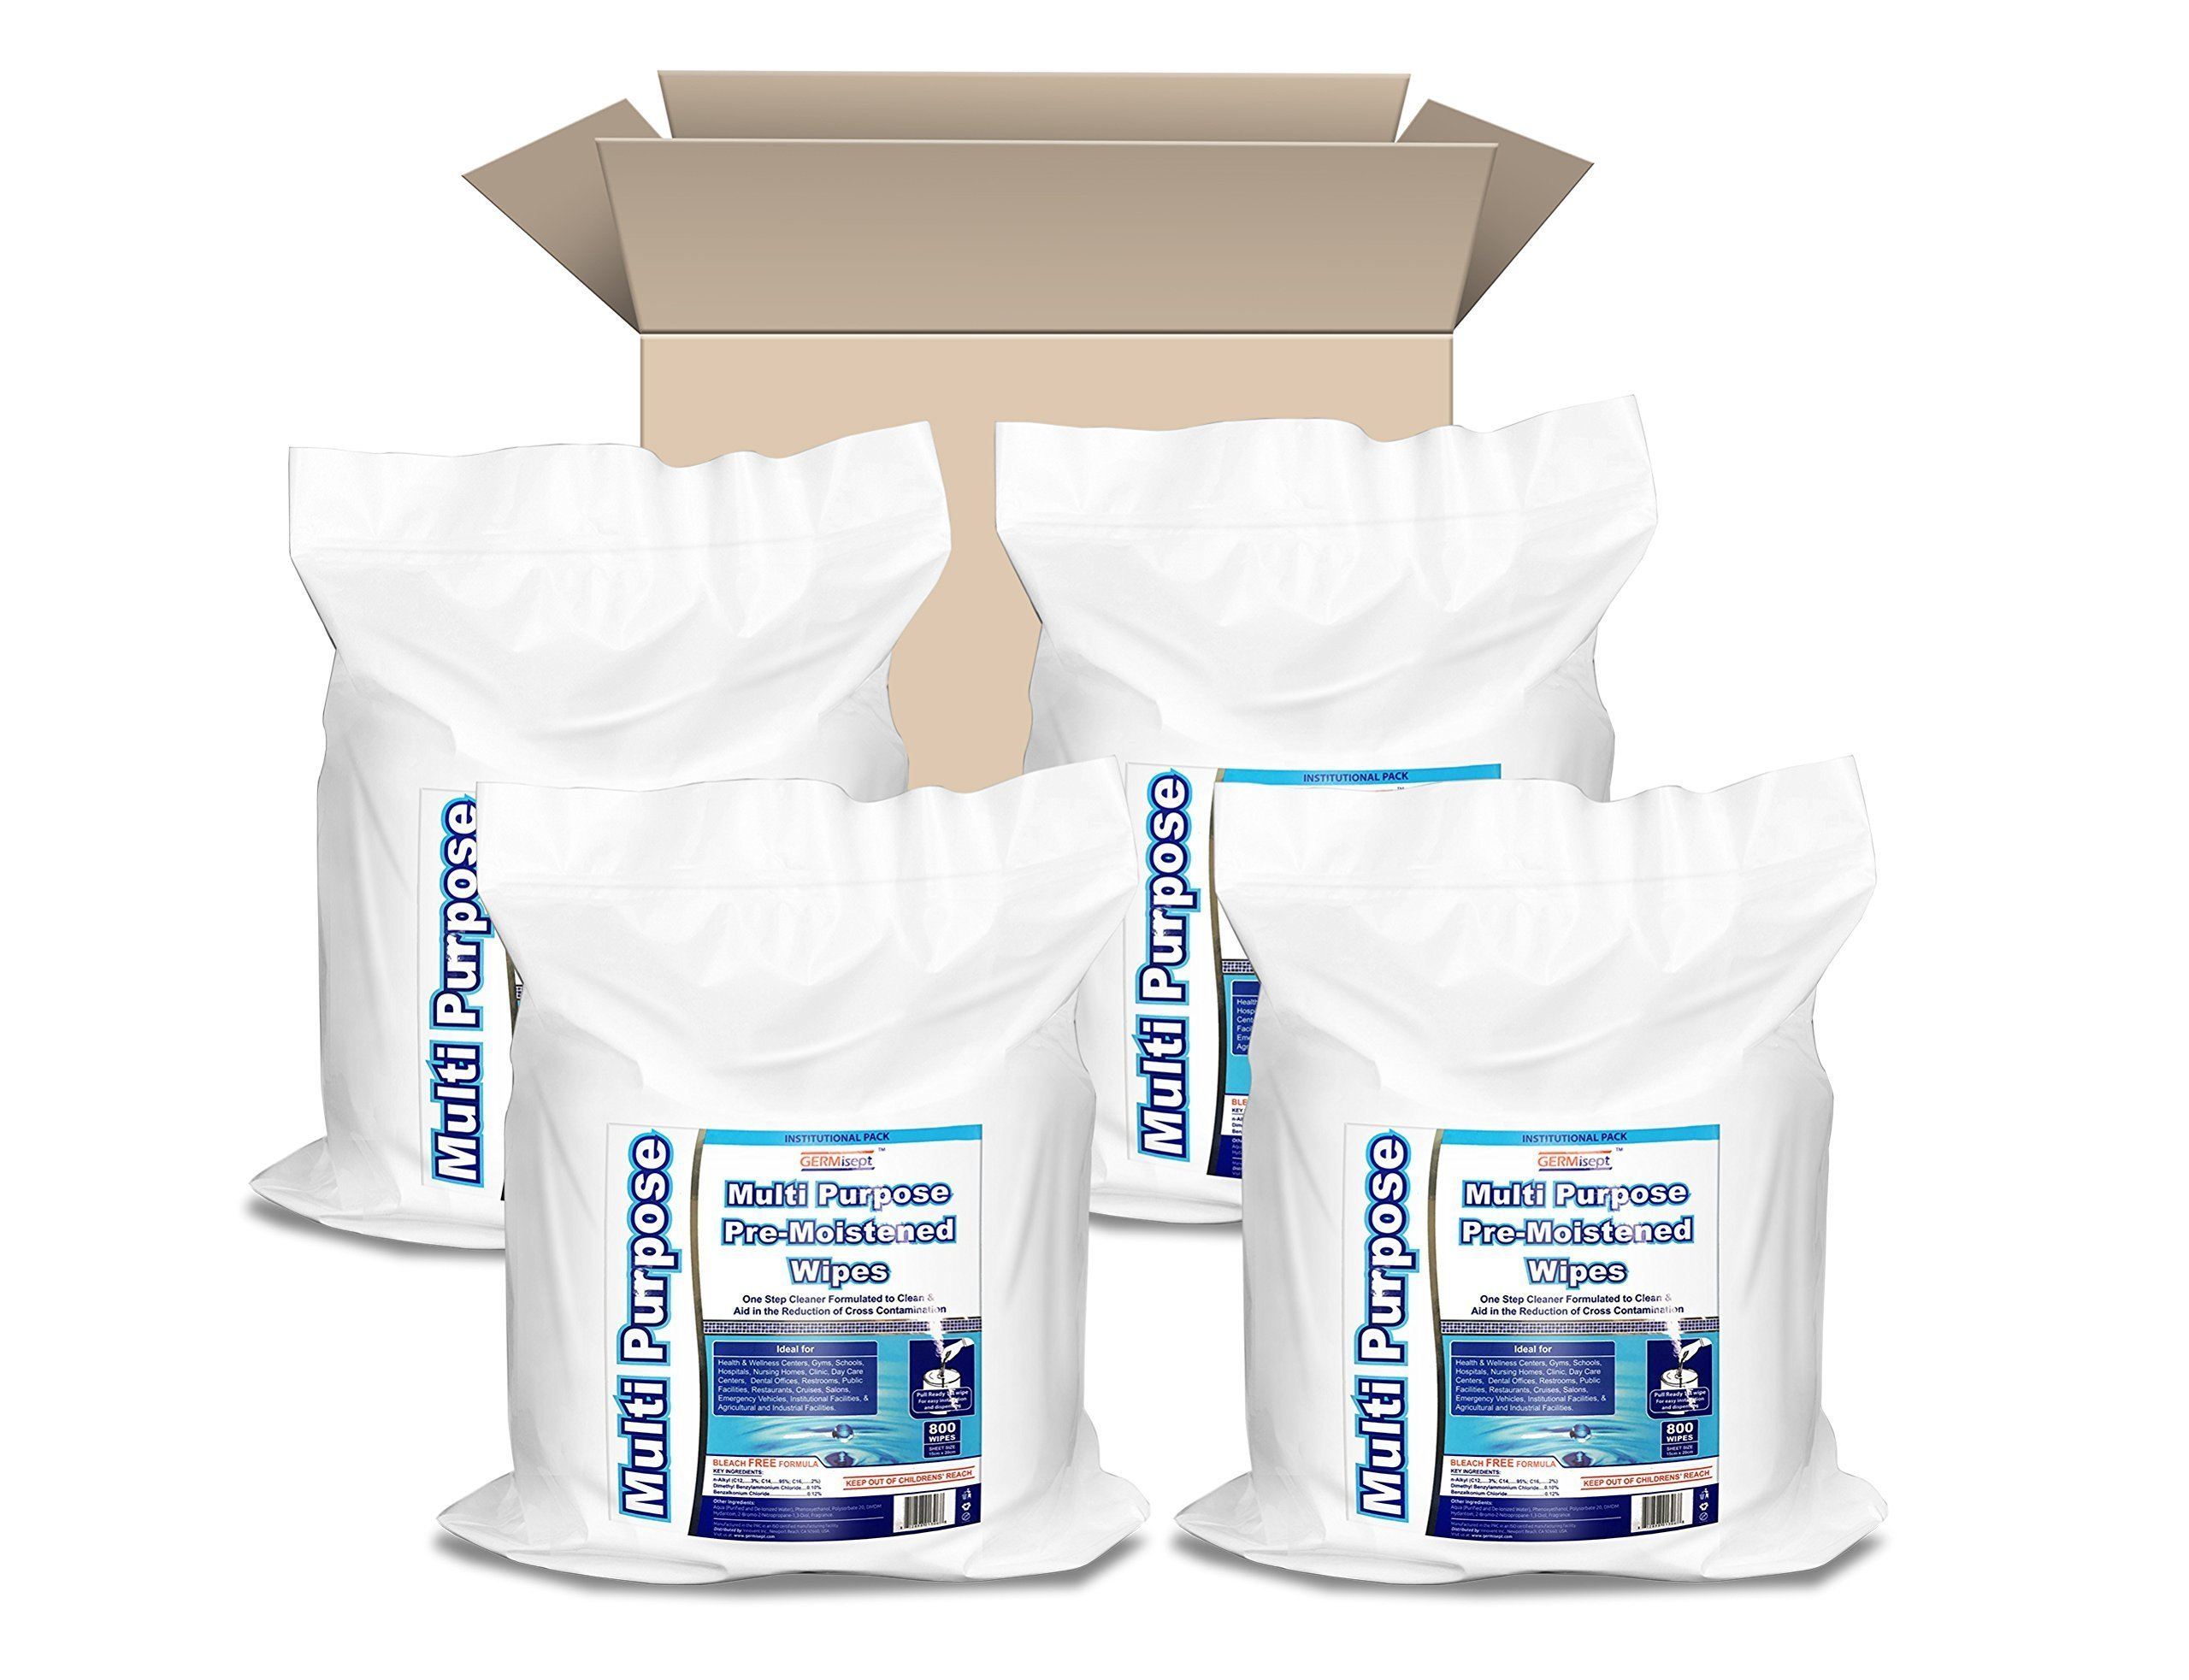 GERMISEPT Multipurpose Gym Wipes & Wellness Center Cleaning Wipes/Cart Wipes (800 Wipes/Roll X 4 Rolls = 3200 wipes)